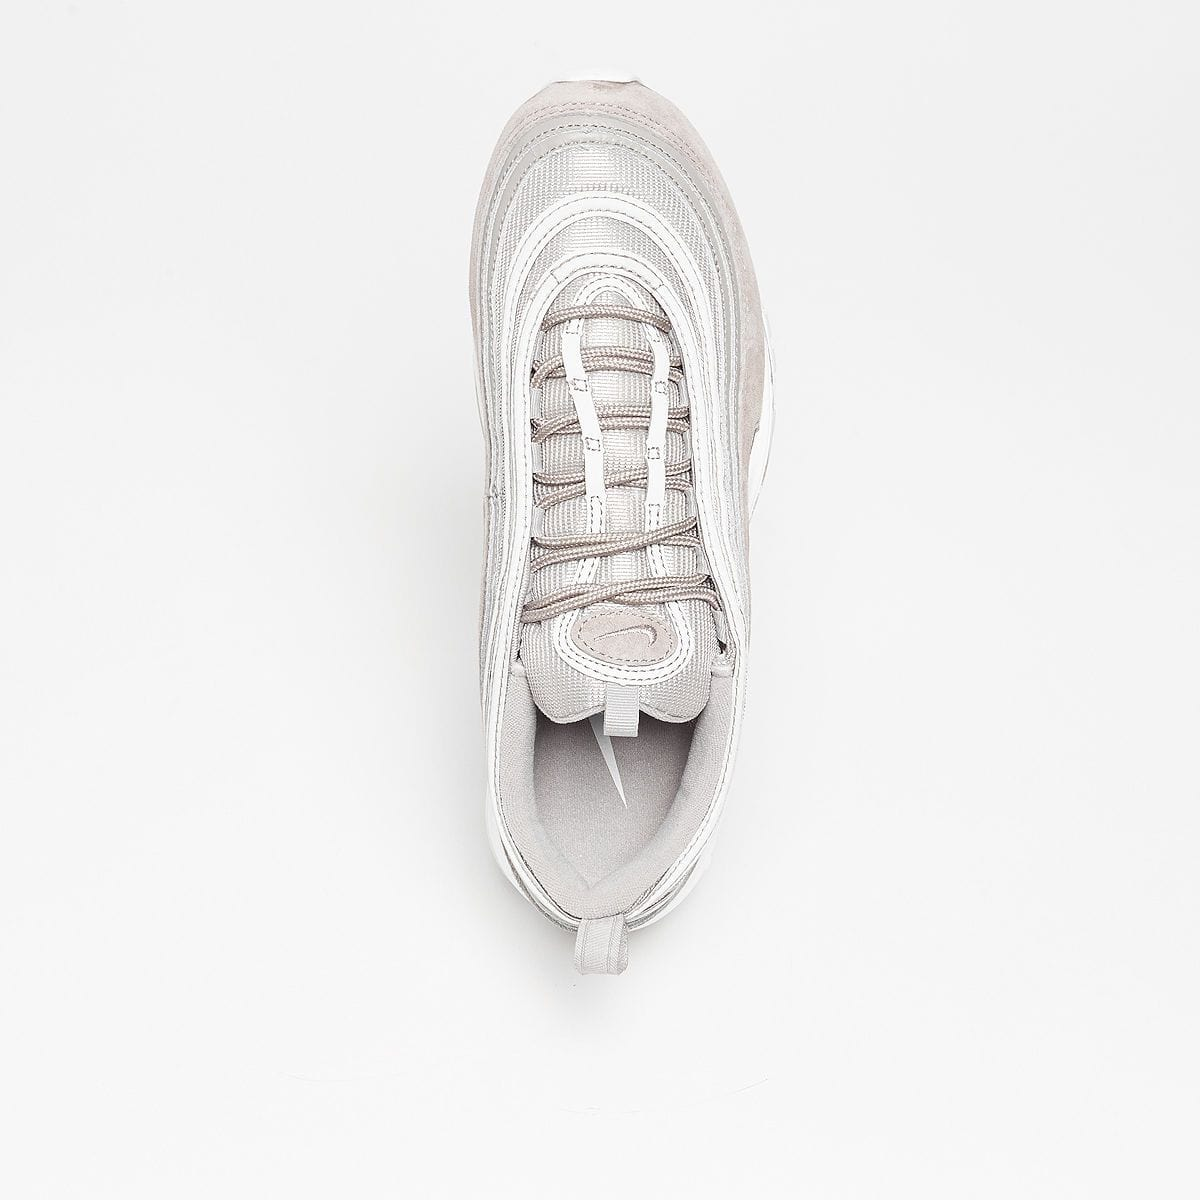 Nike Air Max 97 (Cobblestone - Cobblestone - White) - Kick Game